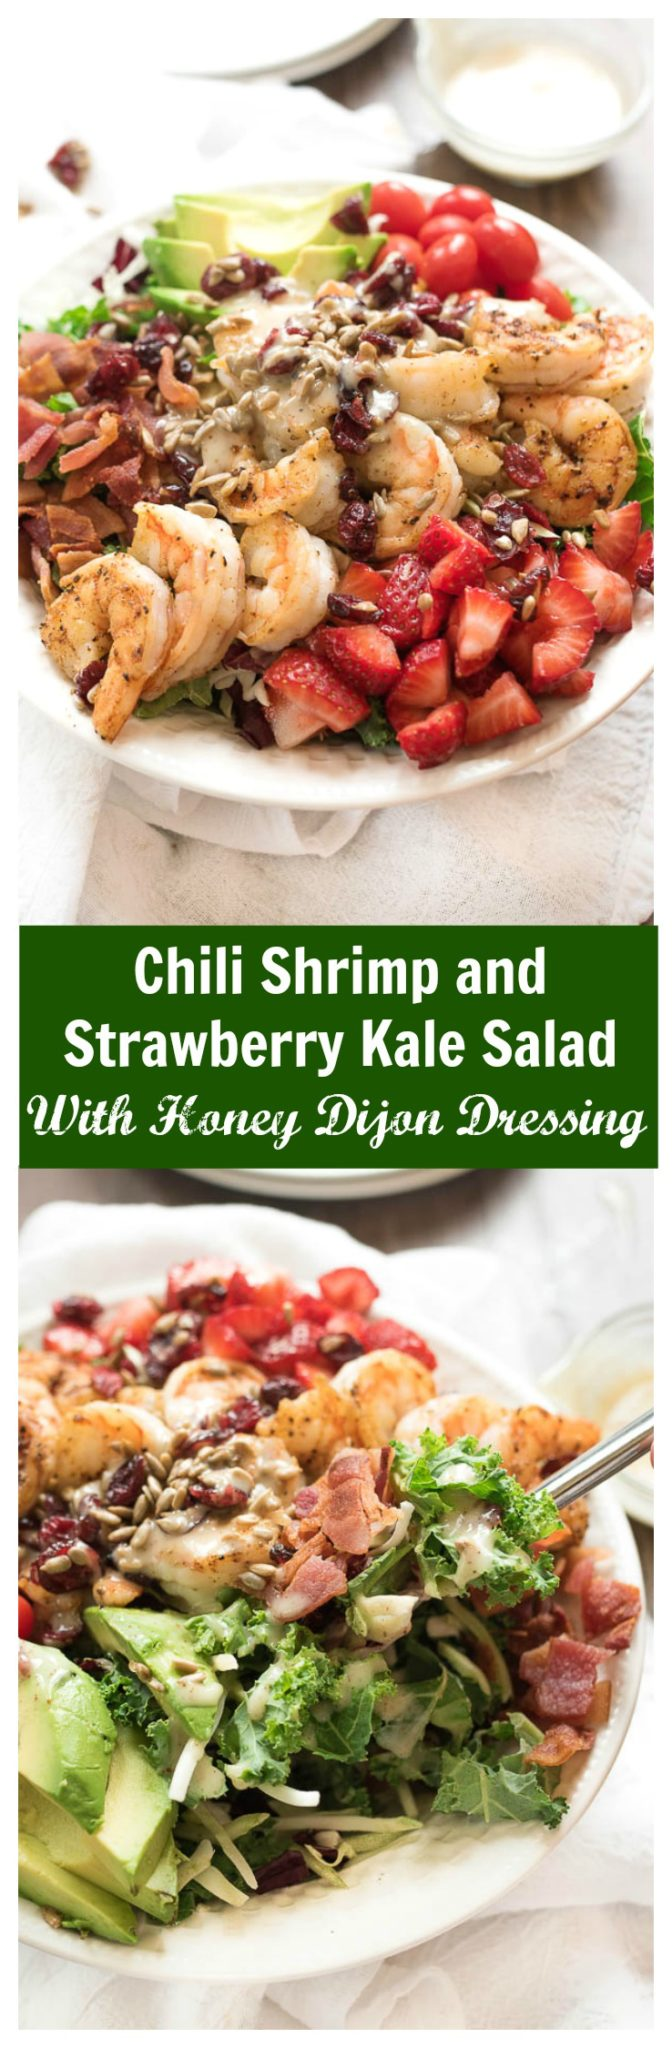 Chili Shrimp and Strawberry Salad with Honey Dijon Dressing- this simple, yet hearty salad is ready in under 15 minutes! #glutenfree #ad #eatsmartveggies